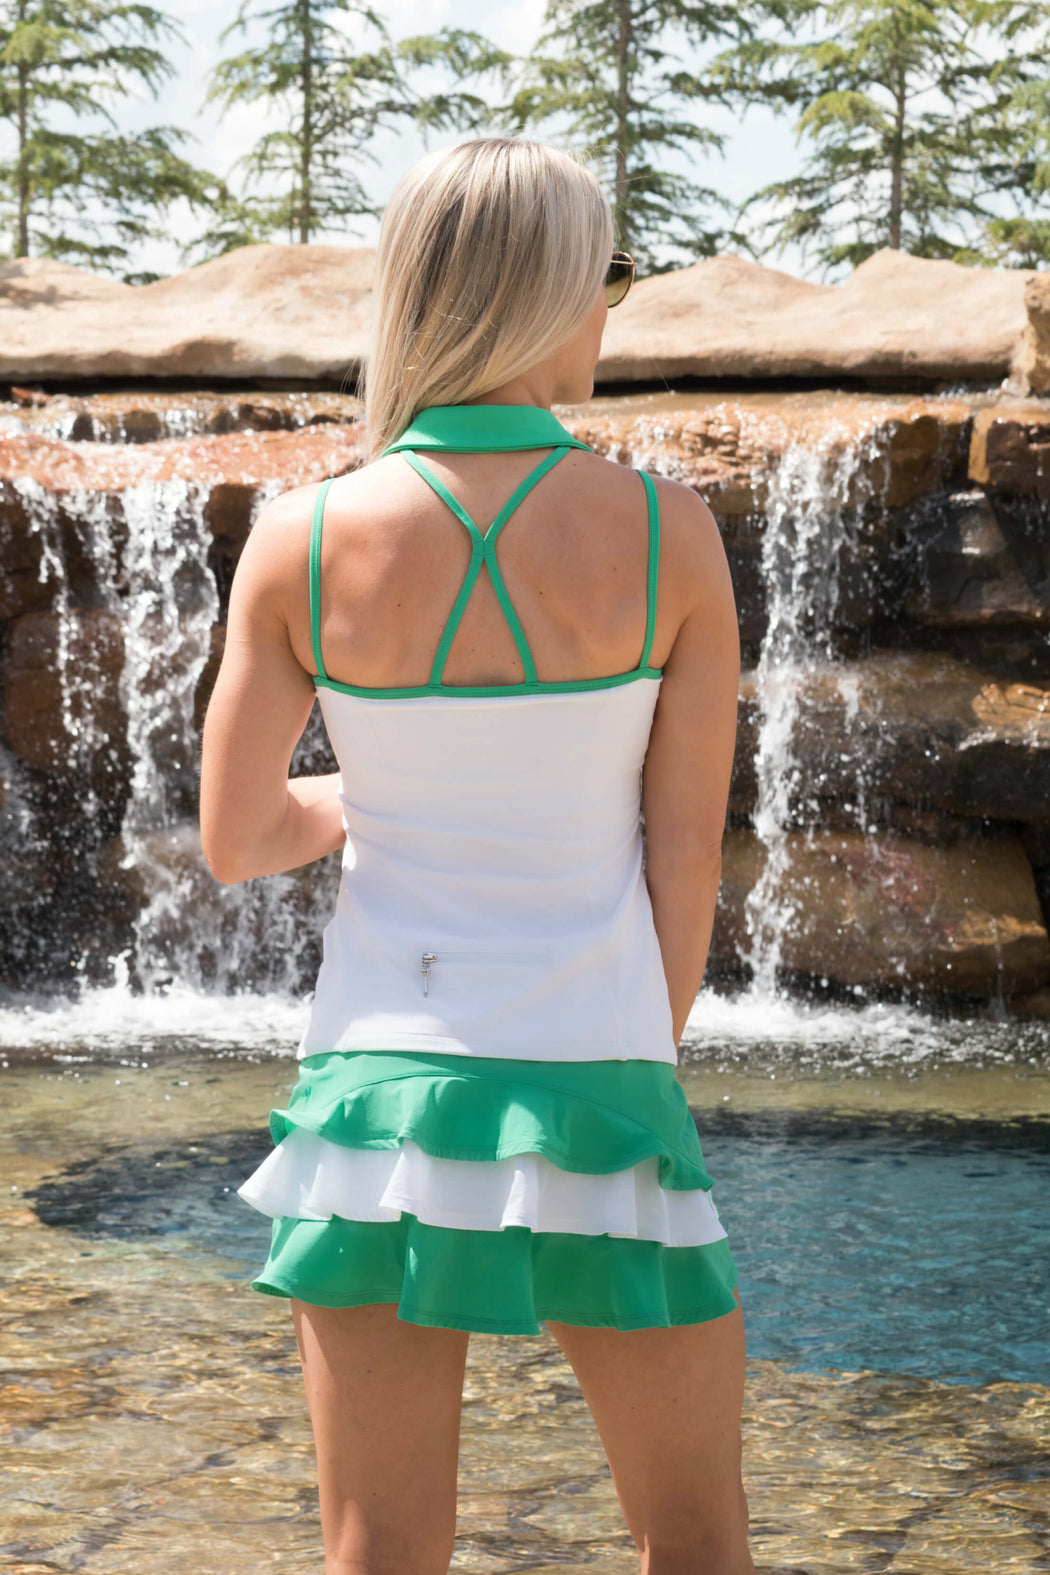 NEW! Ruffle Butt Golf Skirt - Envy Green with White Middle Ruffle - FlirTee Golf